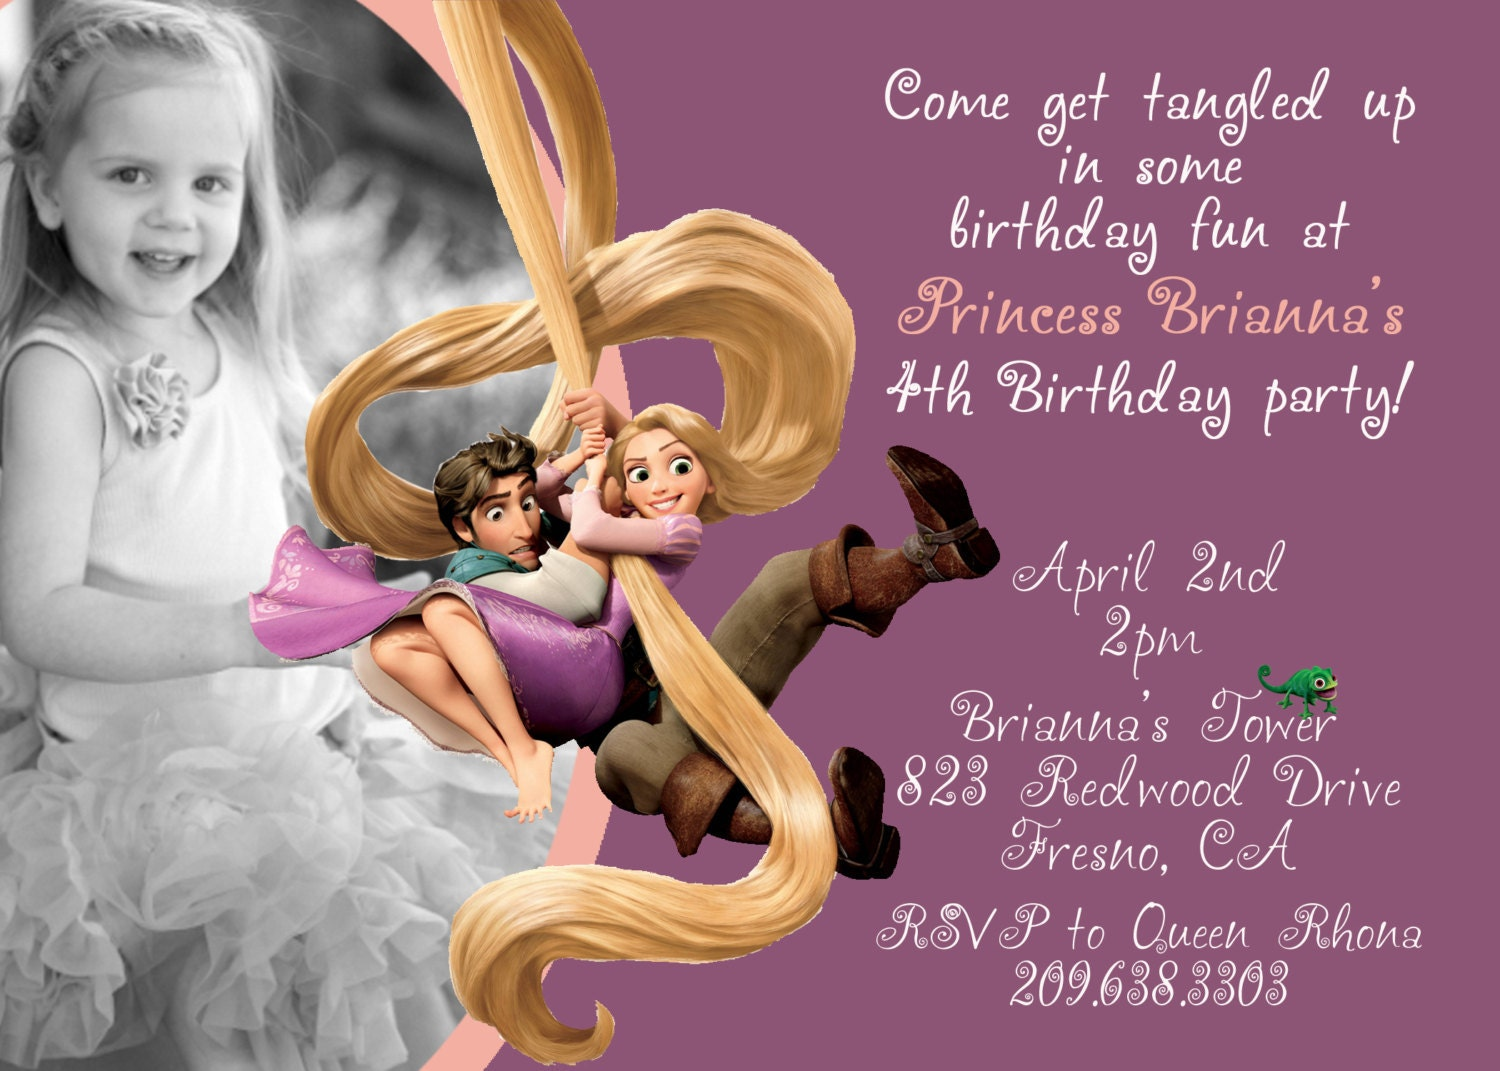 Tangled Birthday Invitations is an amazing ideas you had to choose for invitation design